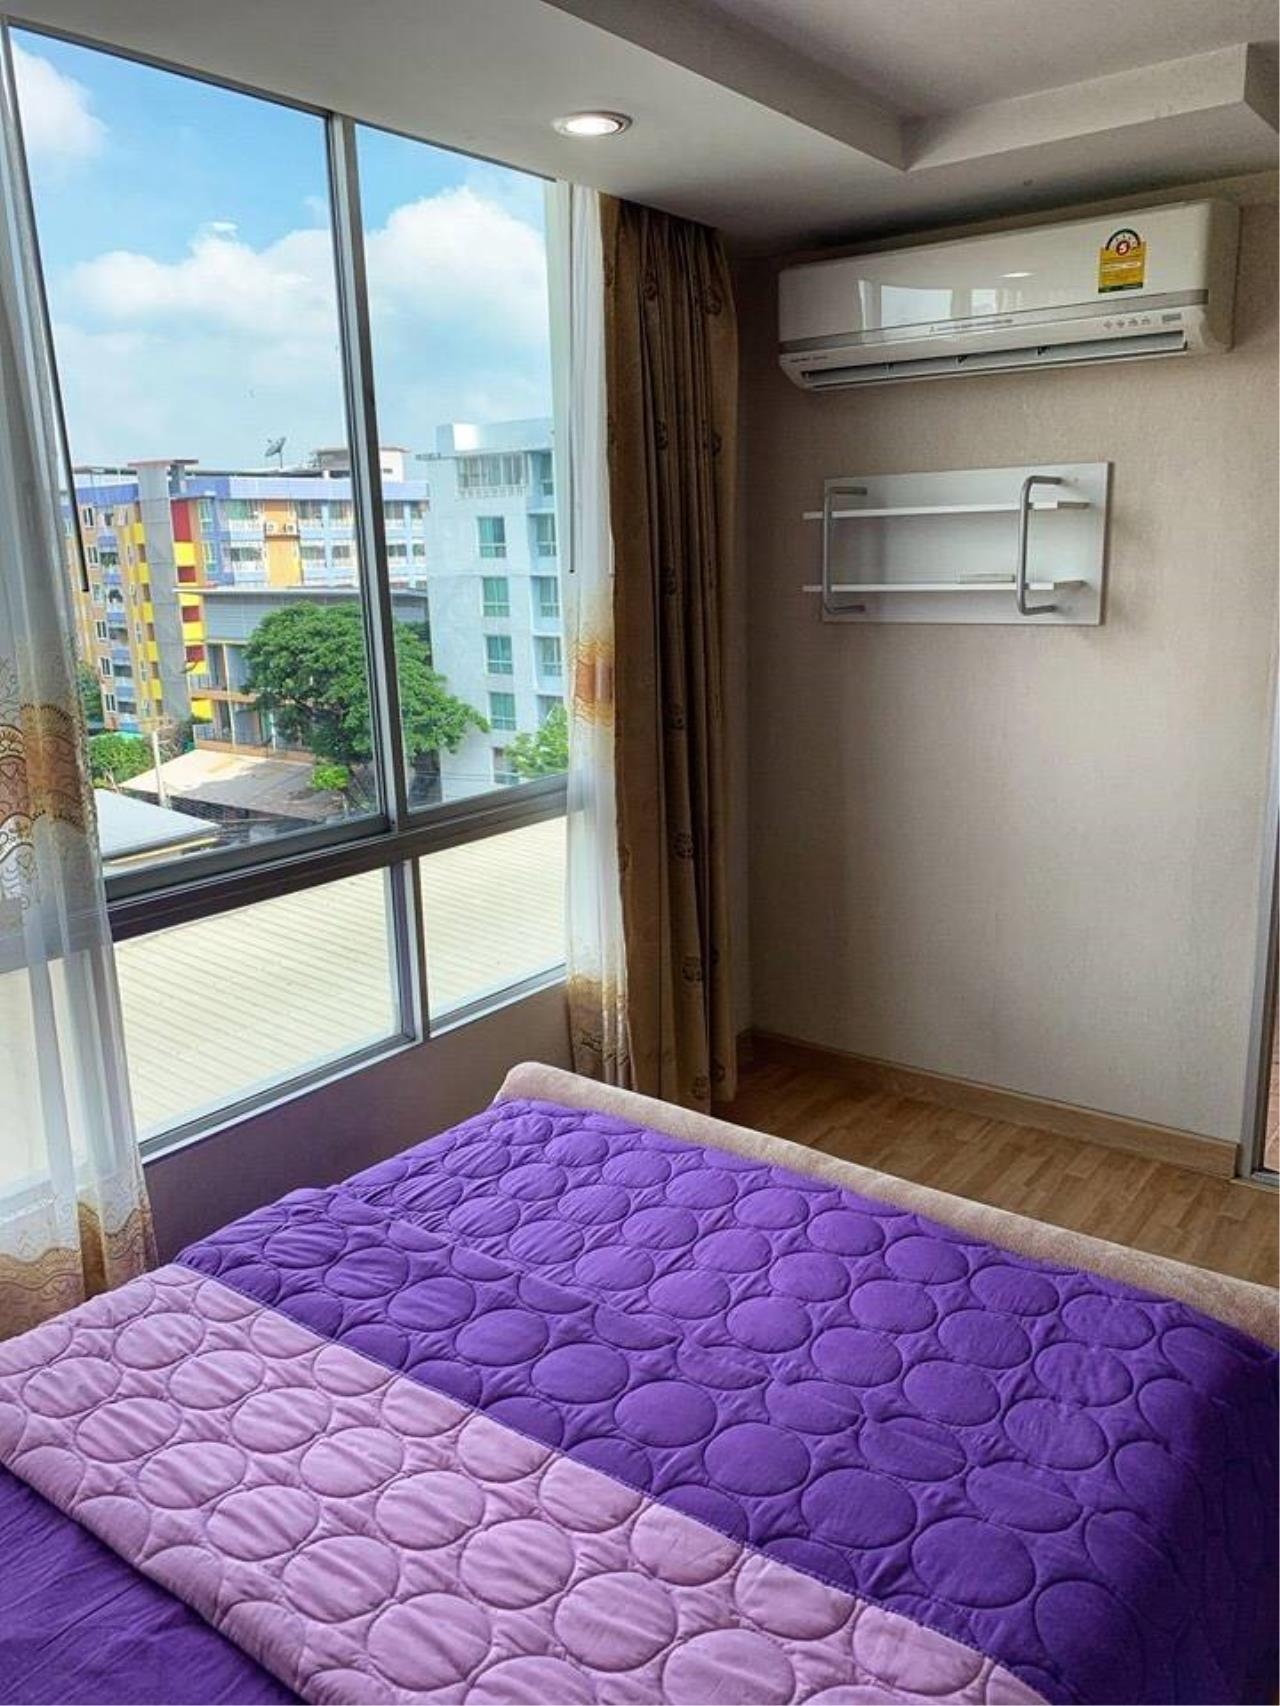 First Choice Properties by Su Agent Agency's KP037 RATCHADA CITY 18 for sale 1.87 M. 1bedroom. 34 sq.m. @MRT Huai Khwang 12